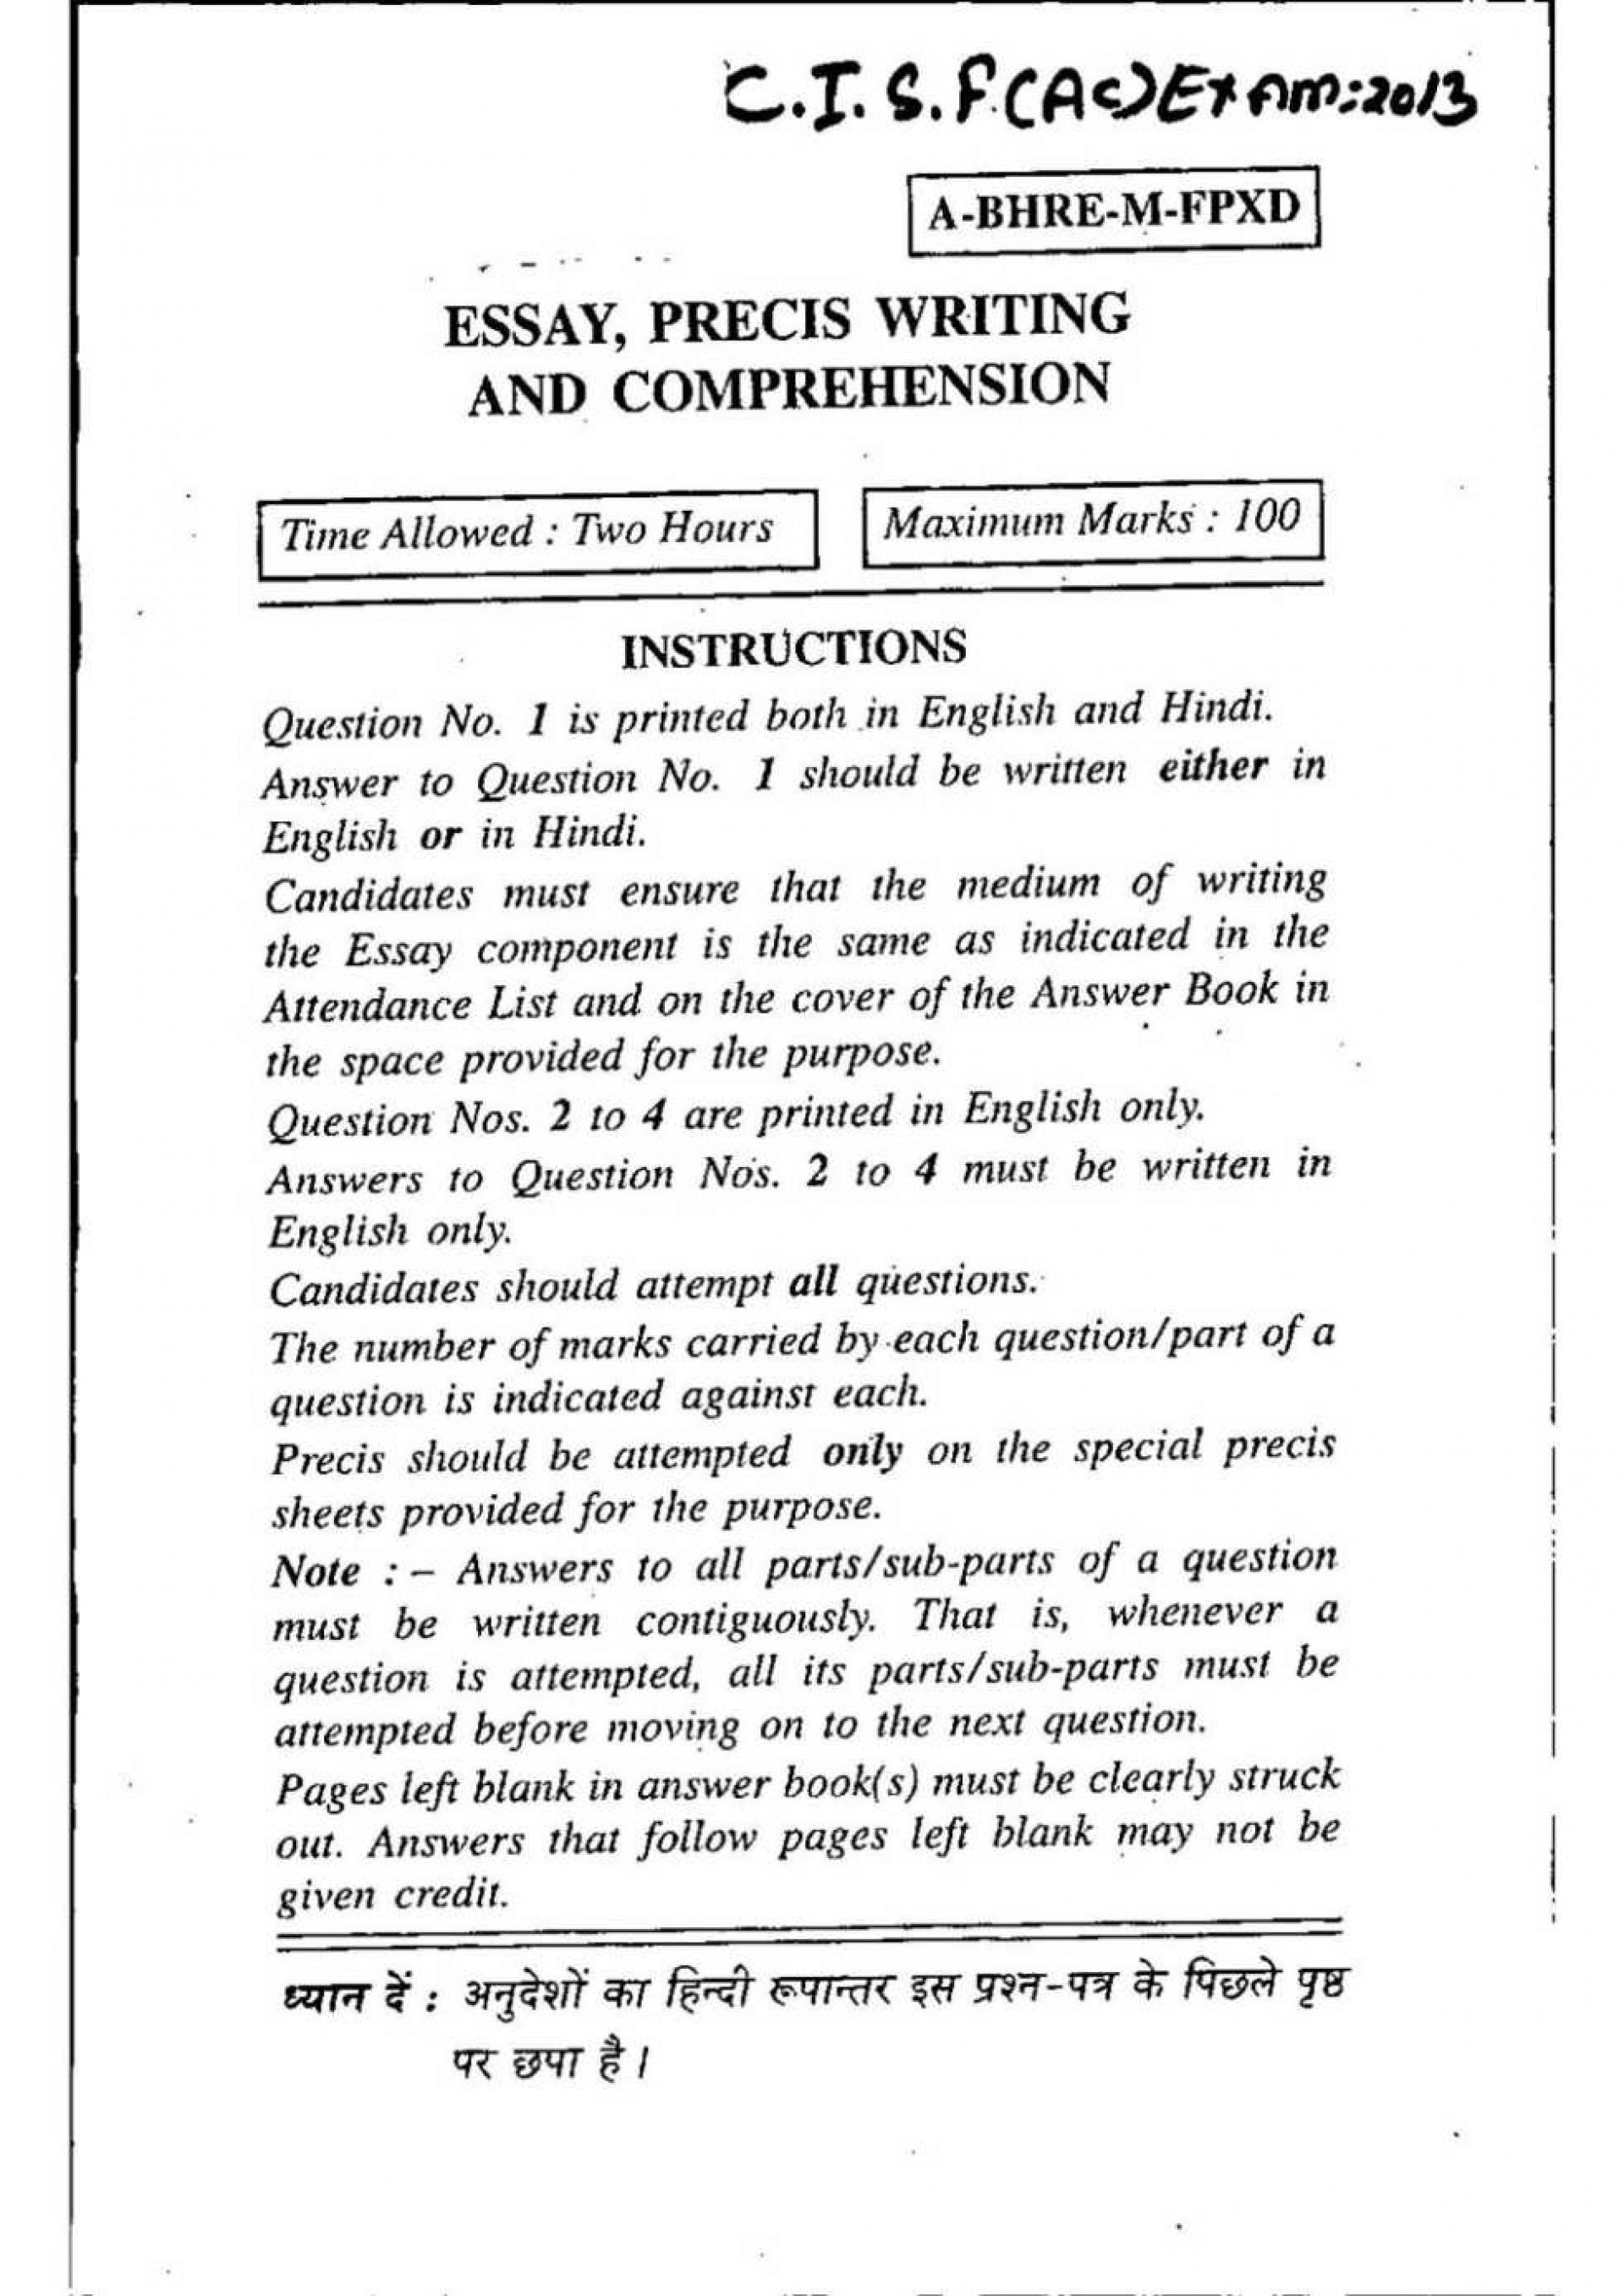 007 Bar Essays Essay For Exam On Exams Student Services The How To Write Good Upsc Cisf Ltd Departmental Competitive Precis Writing And Comp California Incredible Baressays Coupon Code Baressays.com Ny Predictions 1920